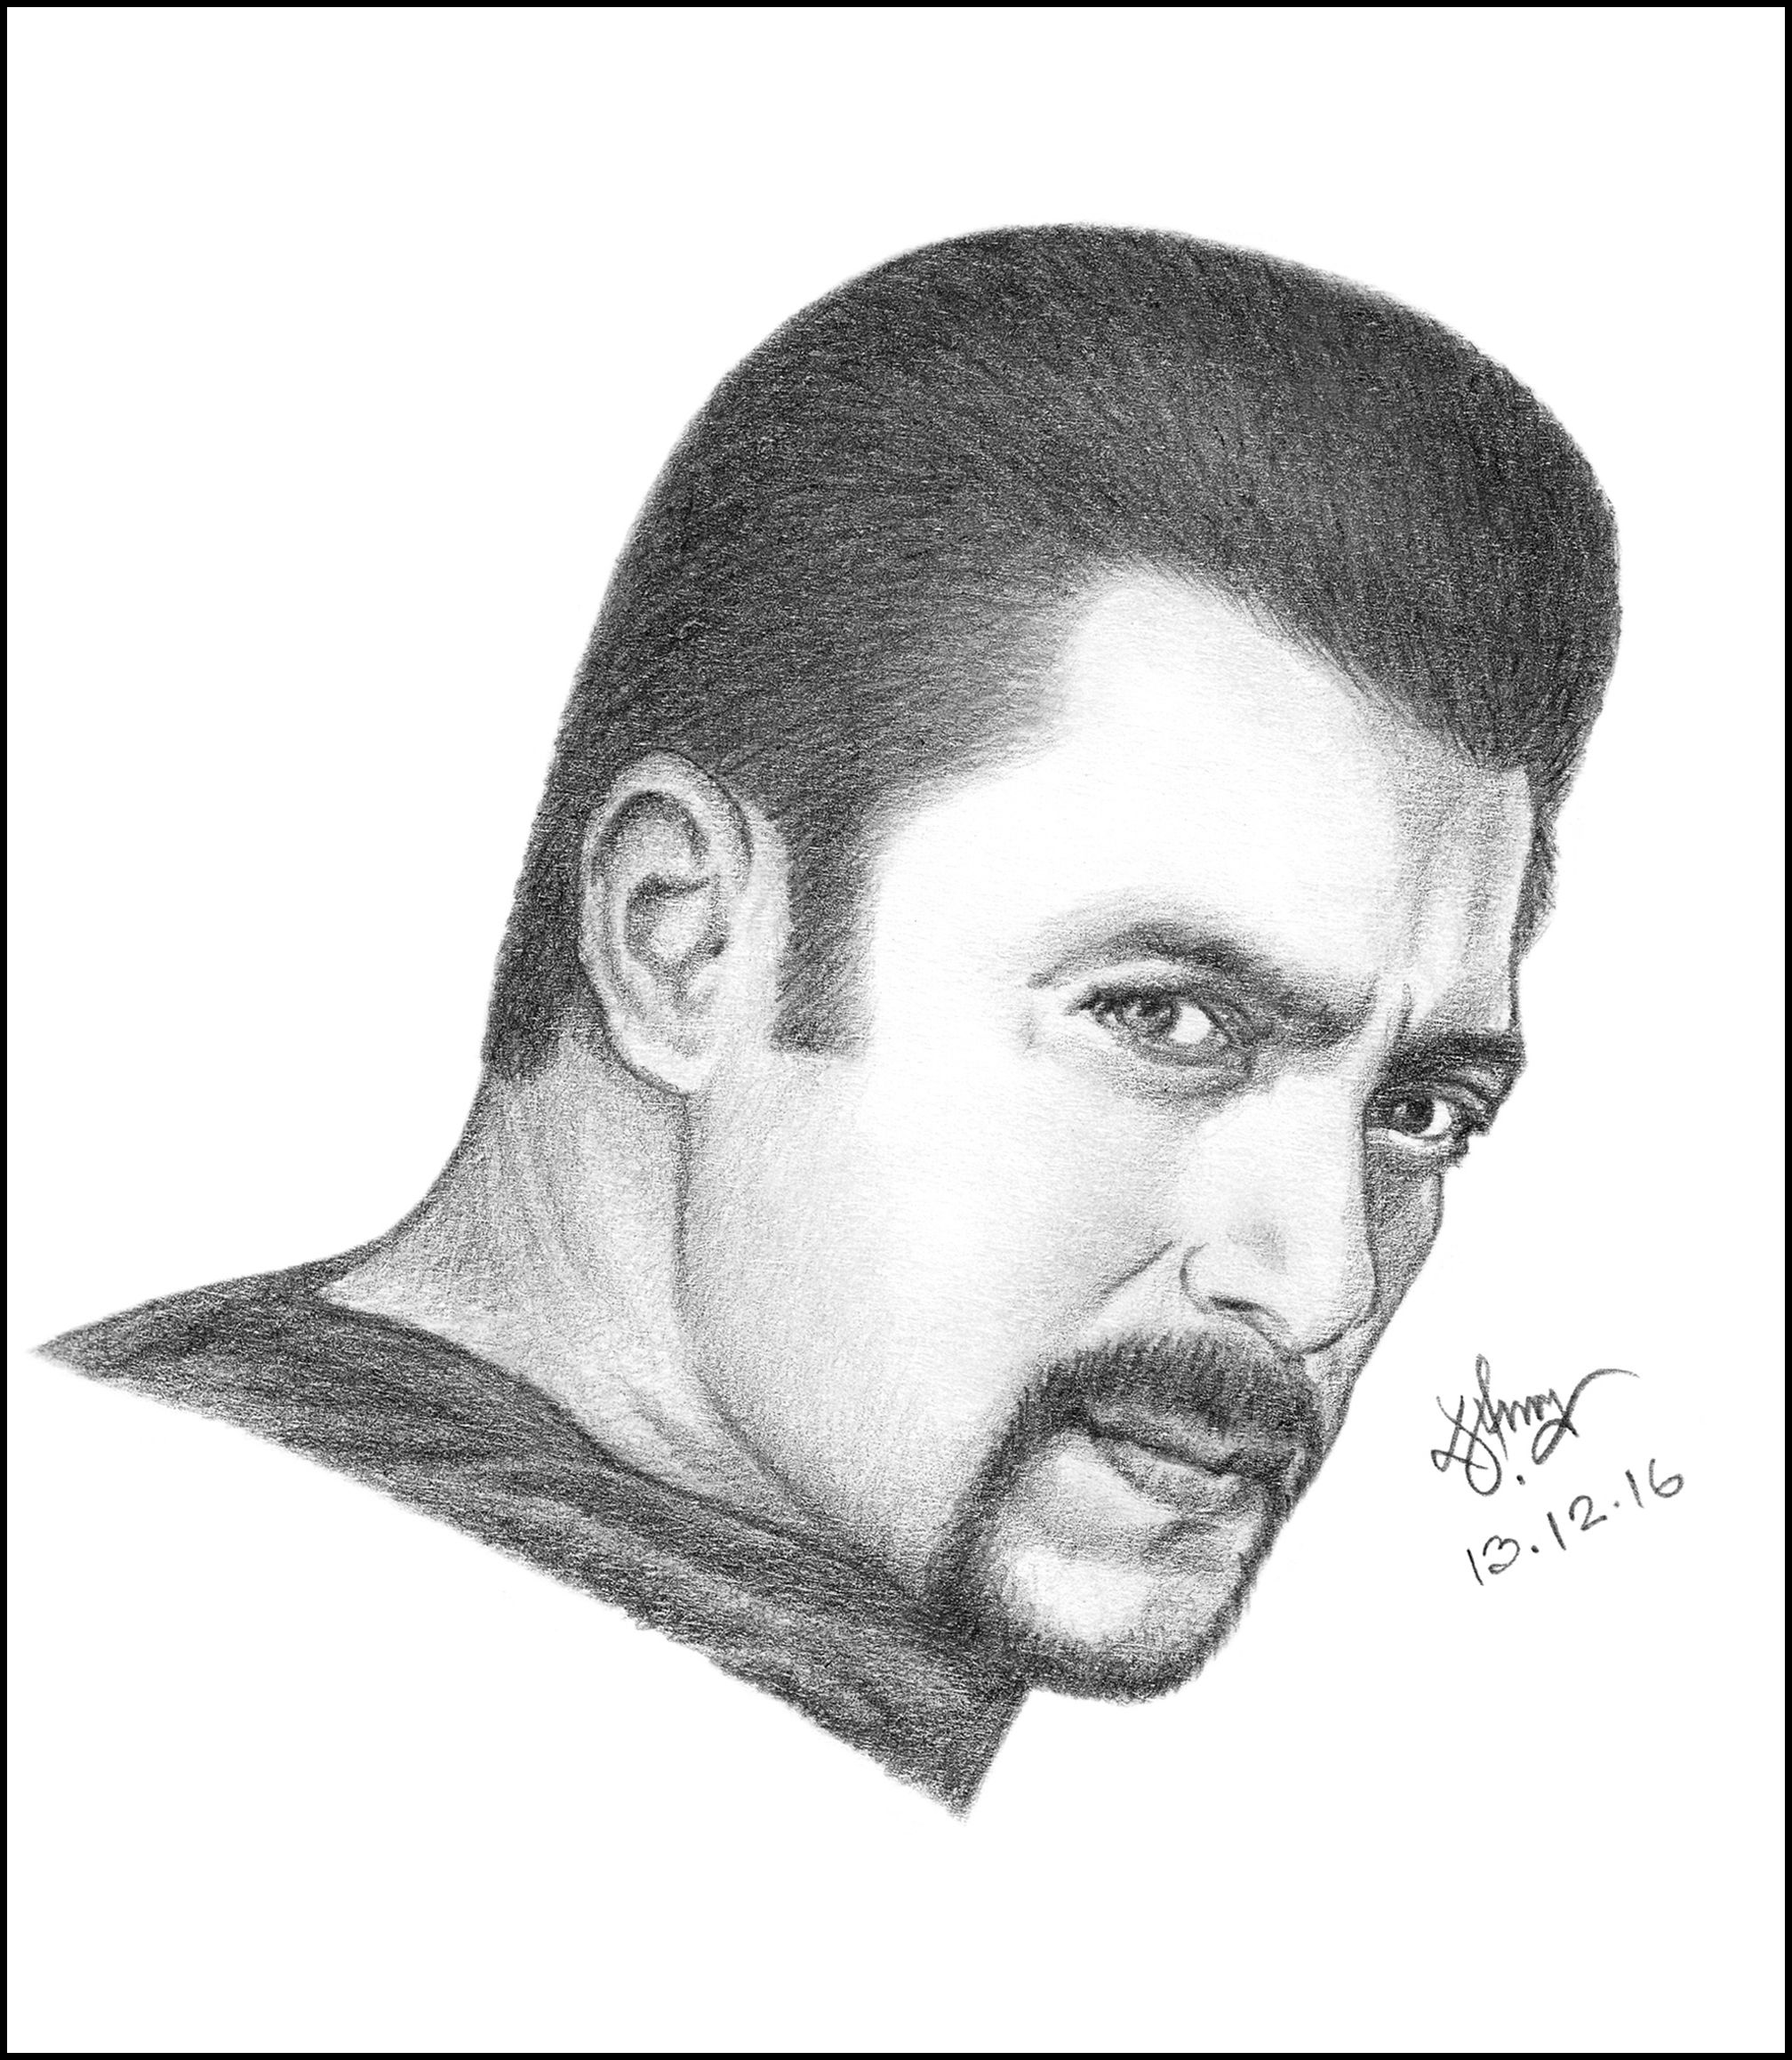 Salman khan sketch salmankhansketch salmankhan salman sketch art drawing portrait pencilart